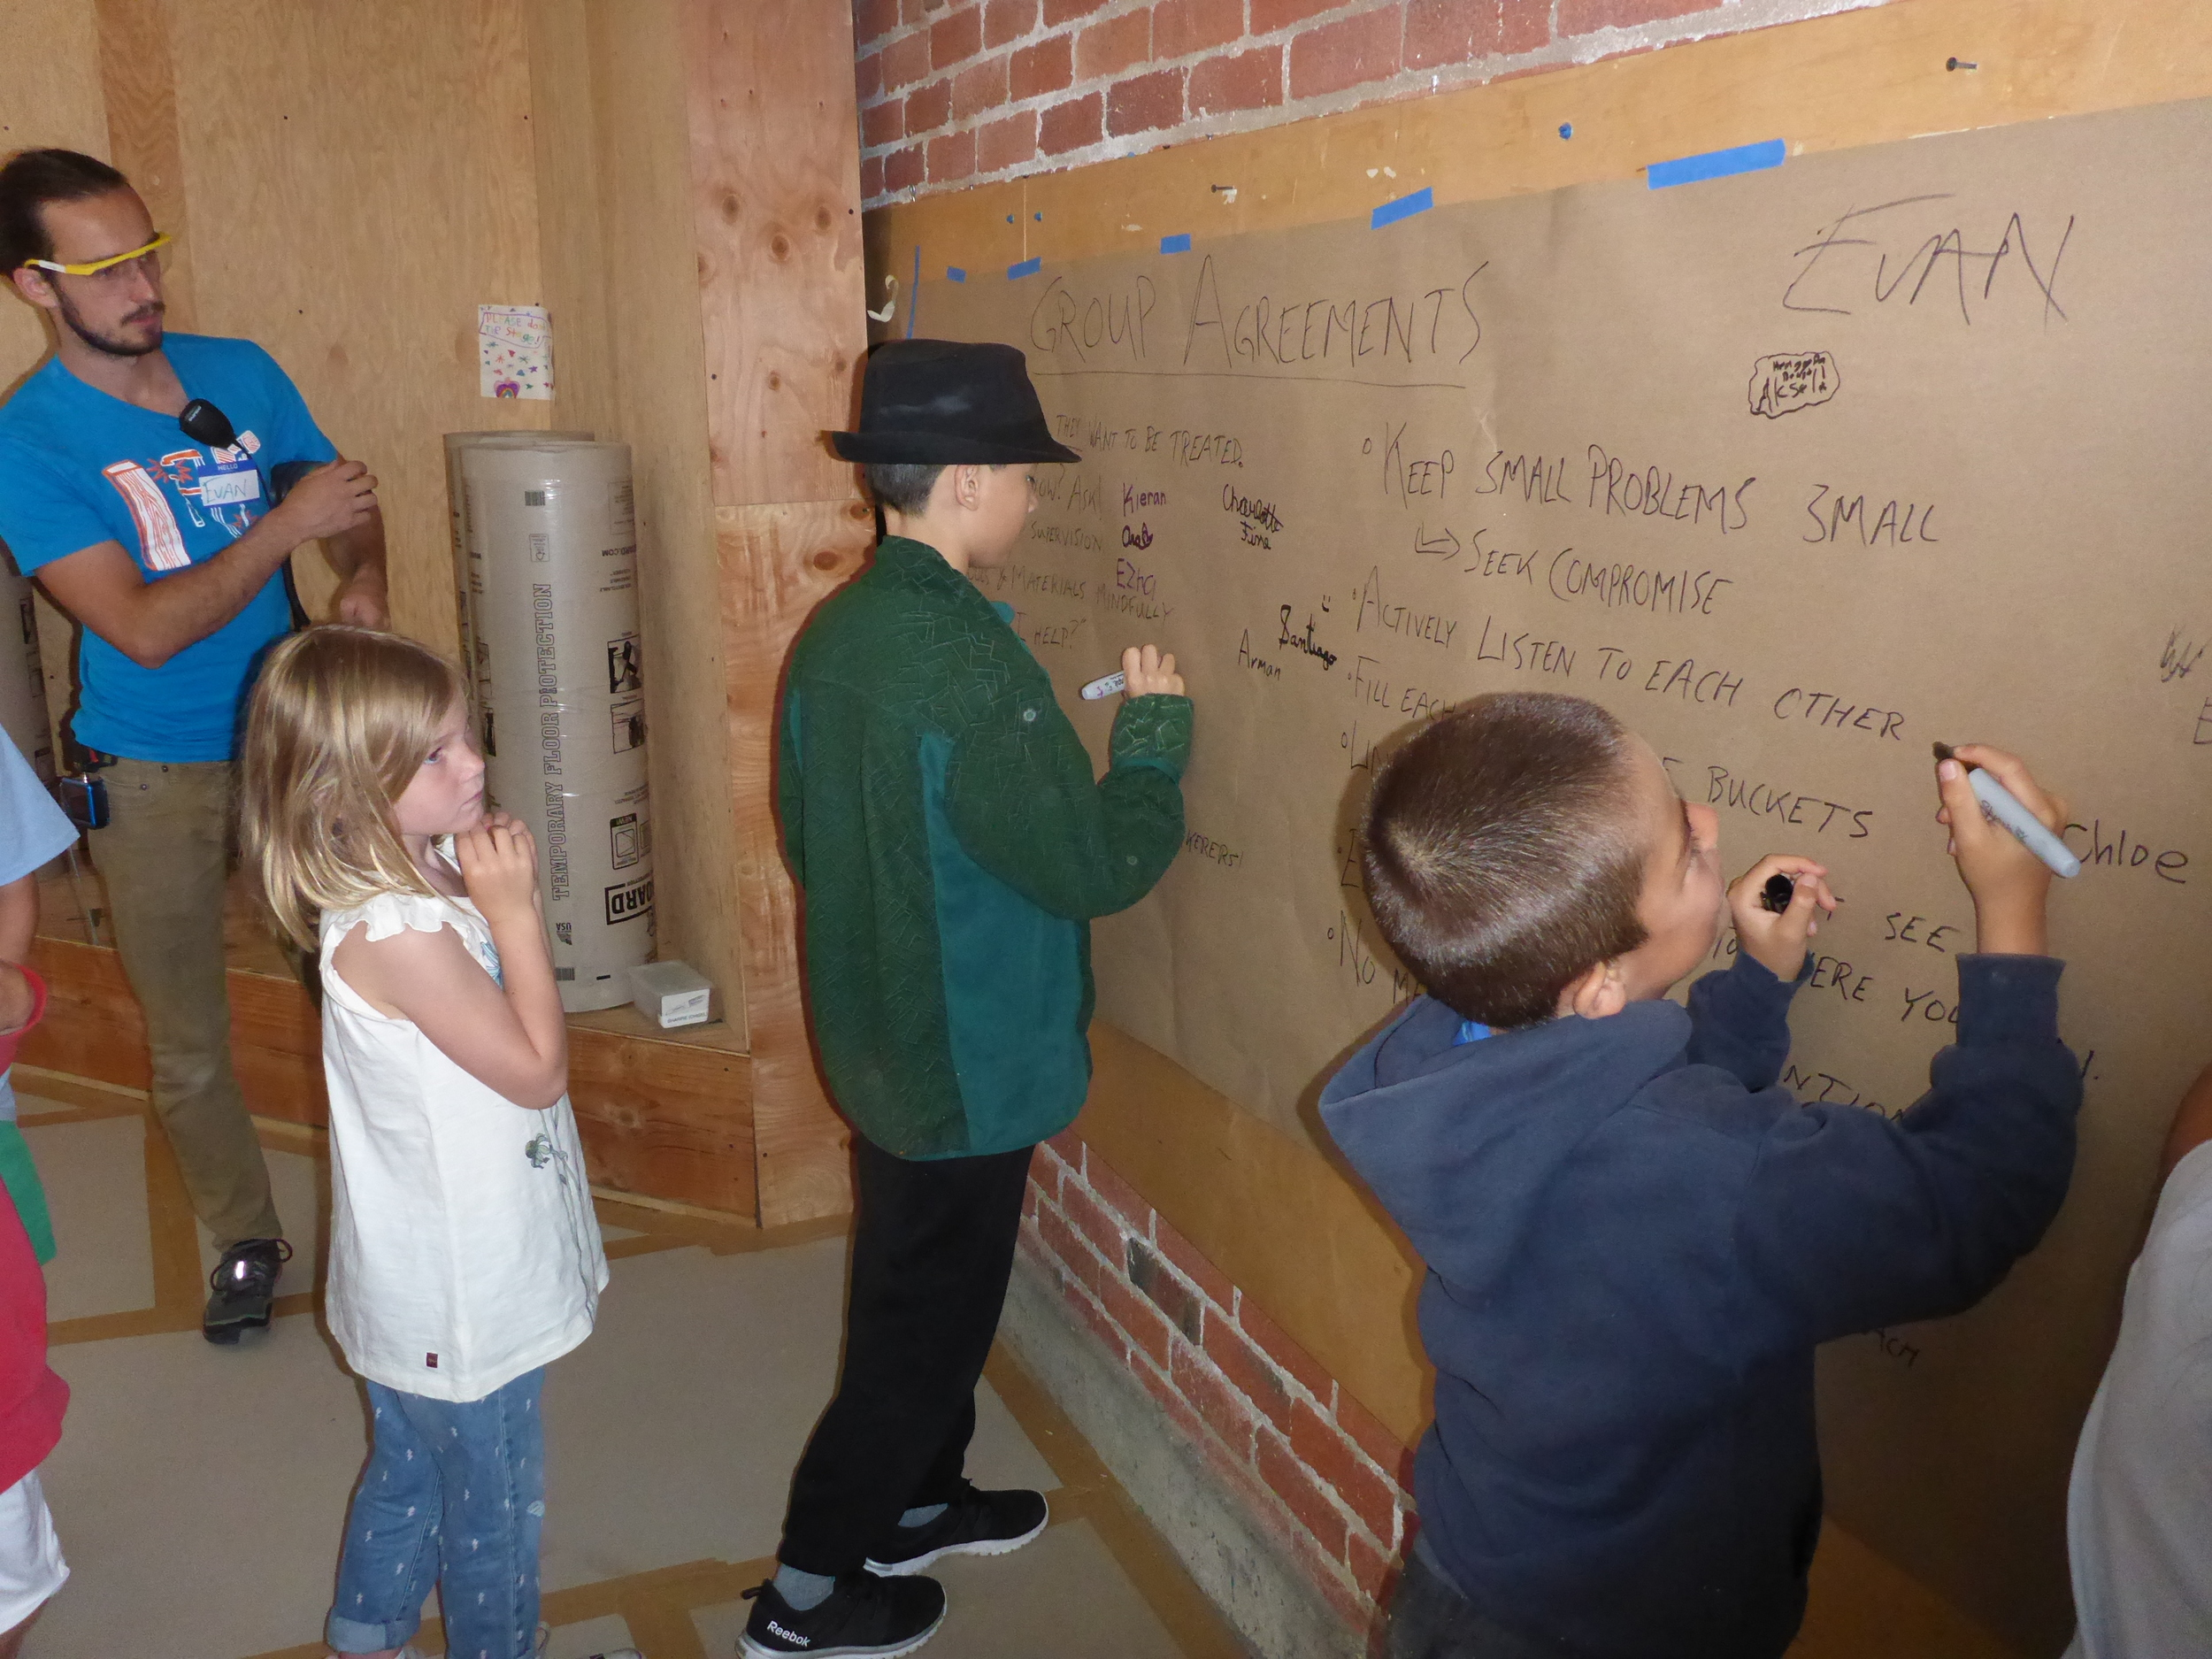 Tinkerers signing their names to the group agreement